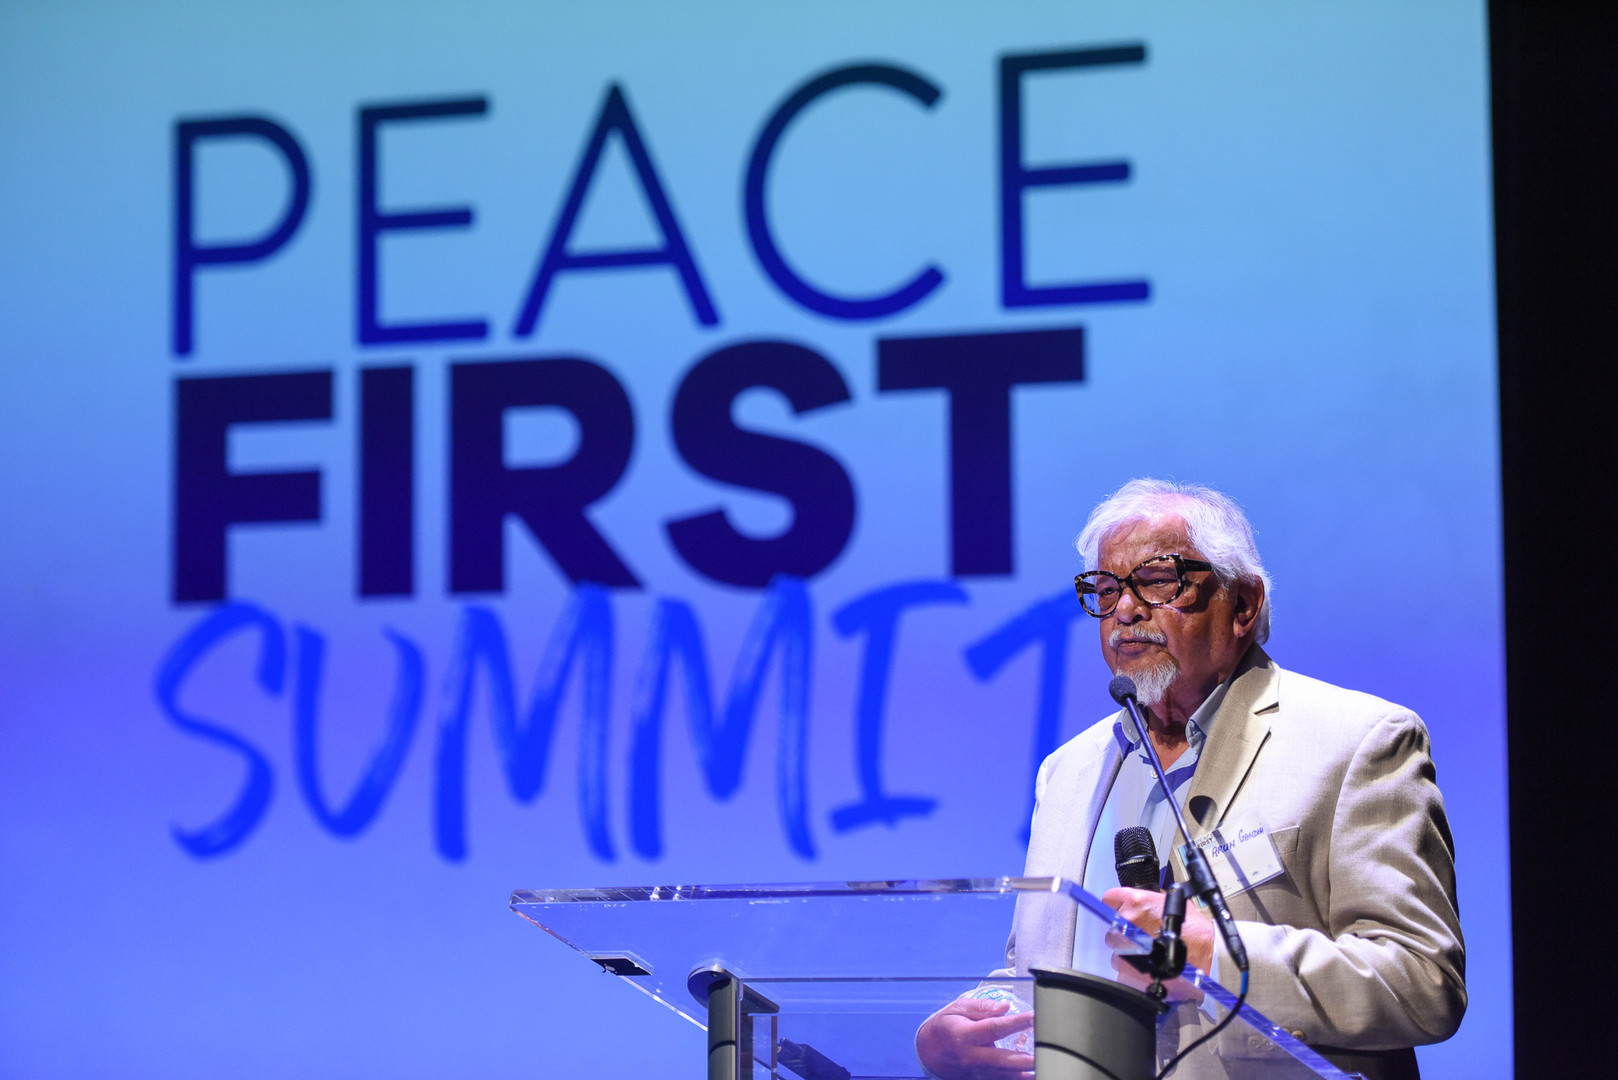 Inaugural Peace Frst Summit Fall 2018. S